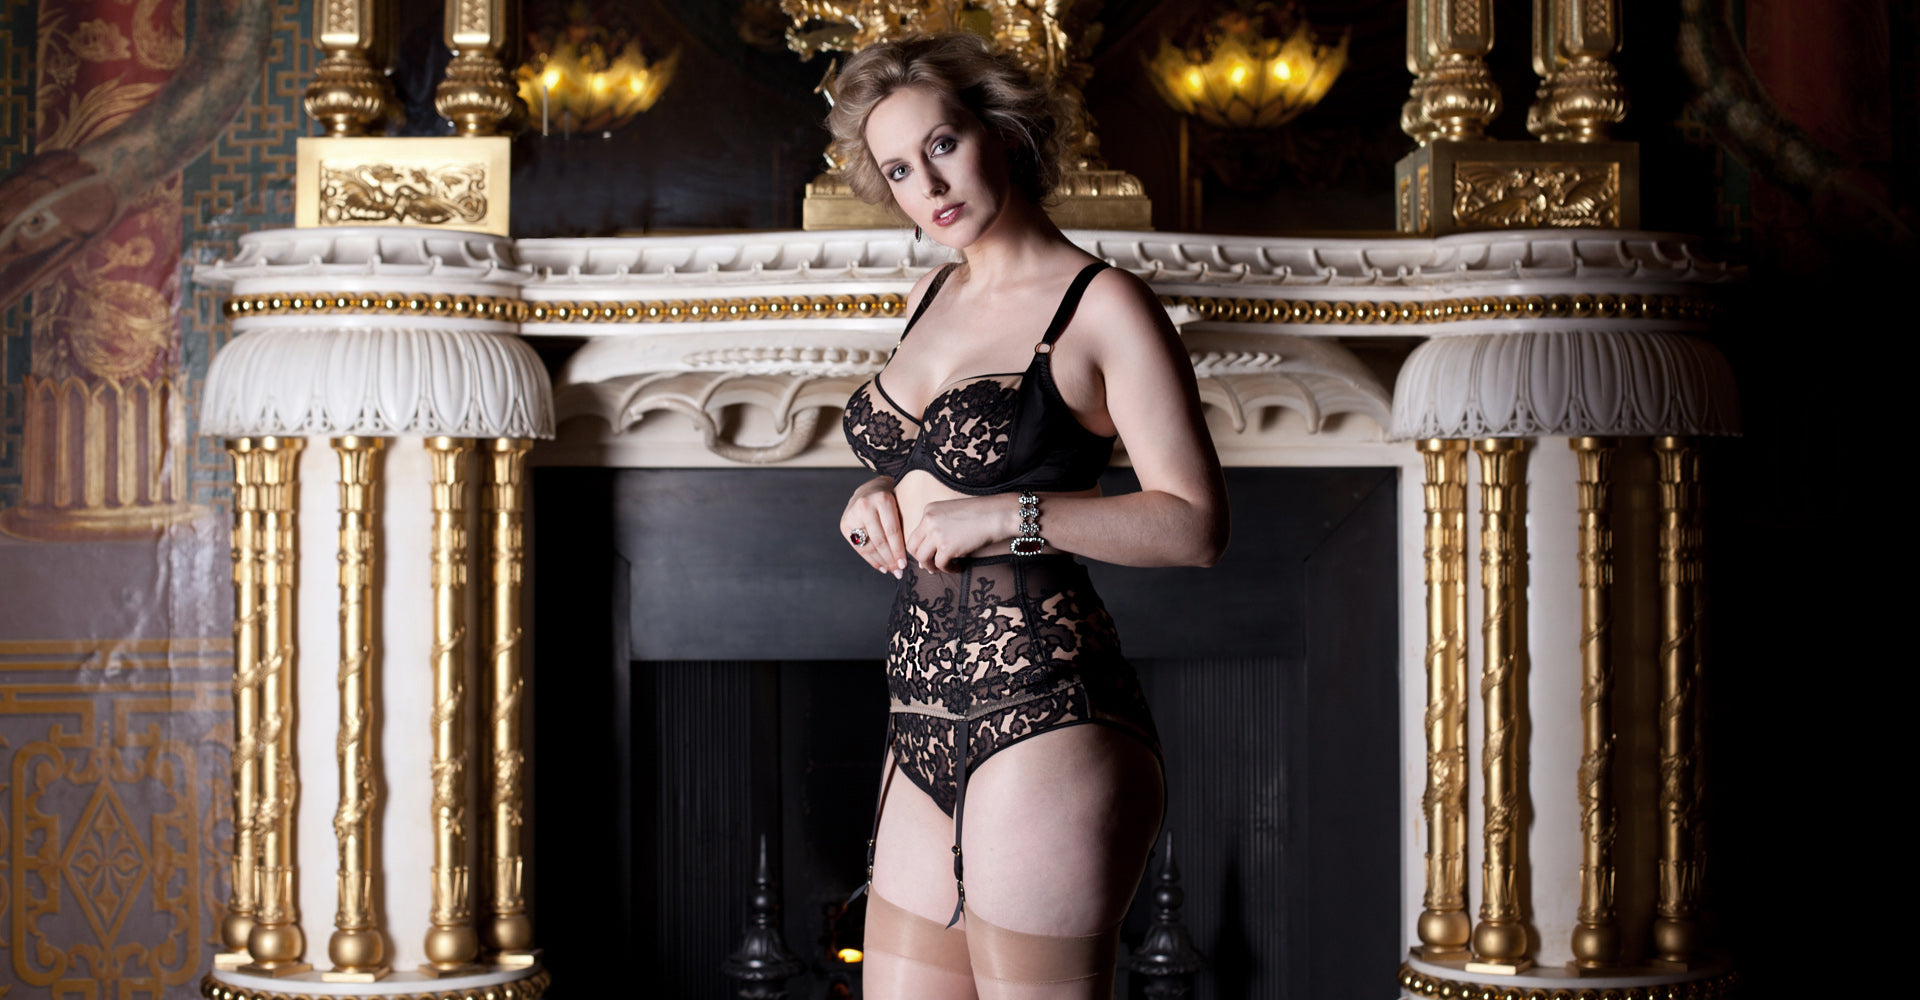 Luxury lingerie for DD-G cup bra sizes, in black embroidery and silk with vintage style garter belt